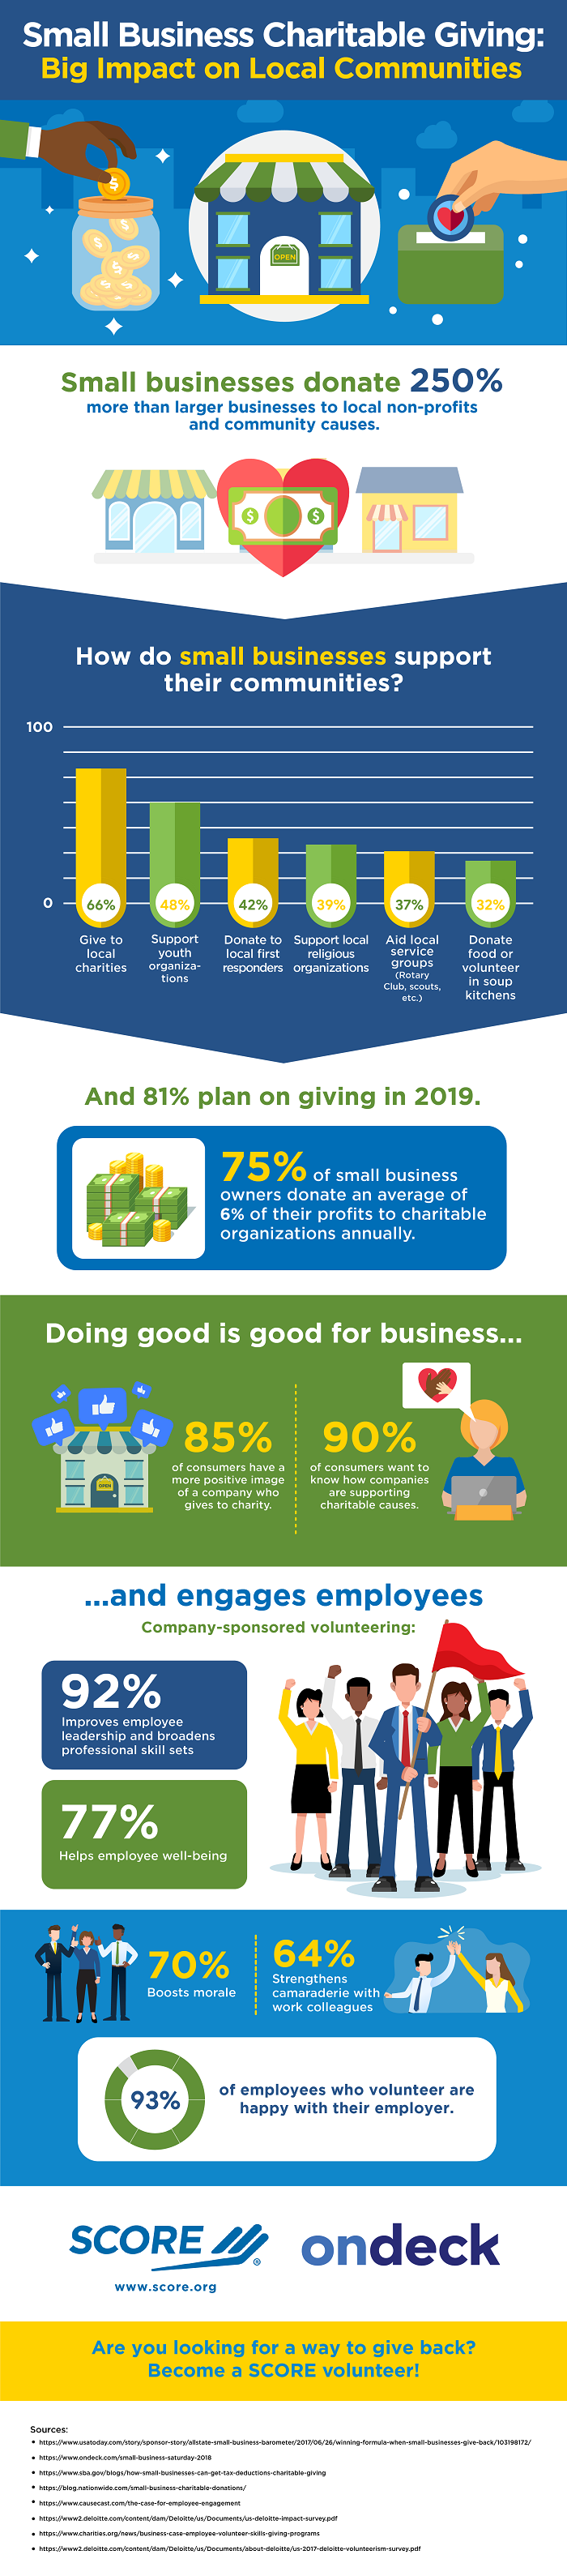 Infographic: Small Business Charitable Giving - Big Impact on Local Communities